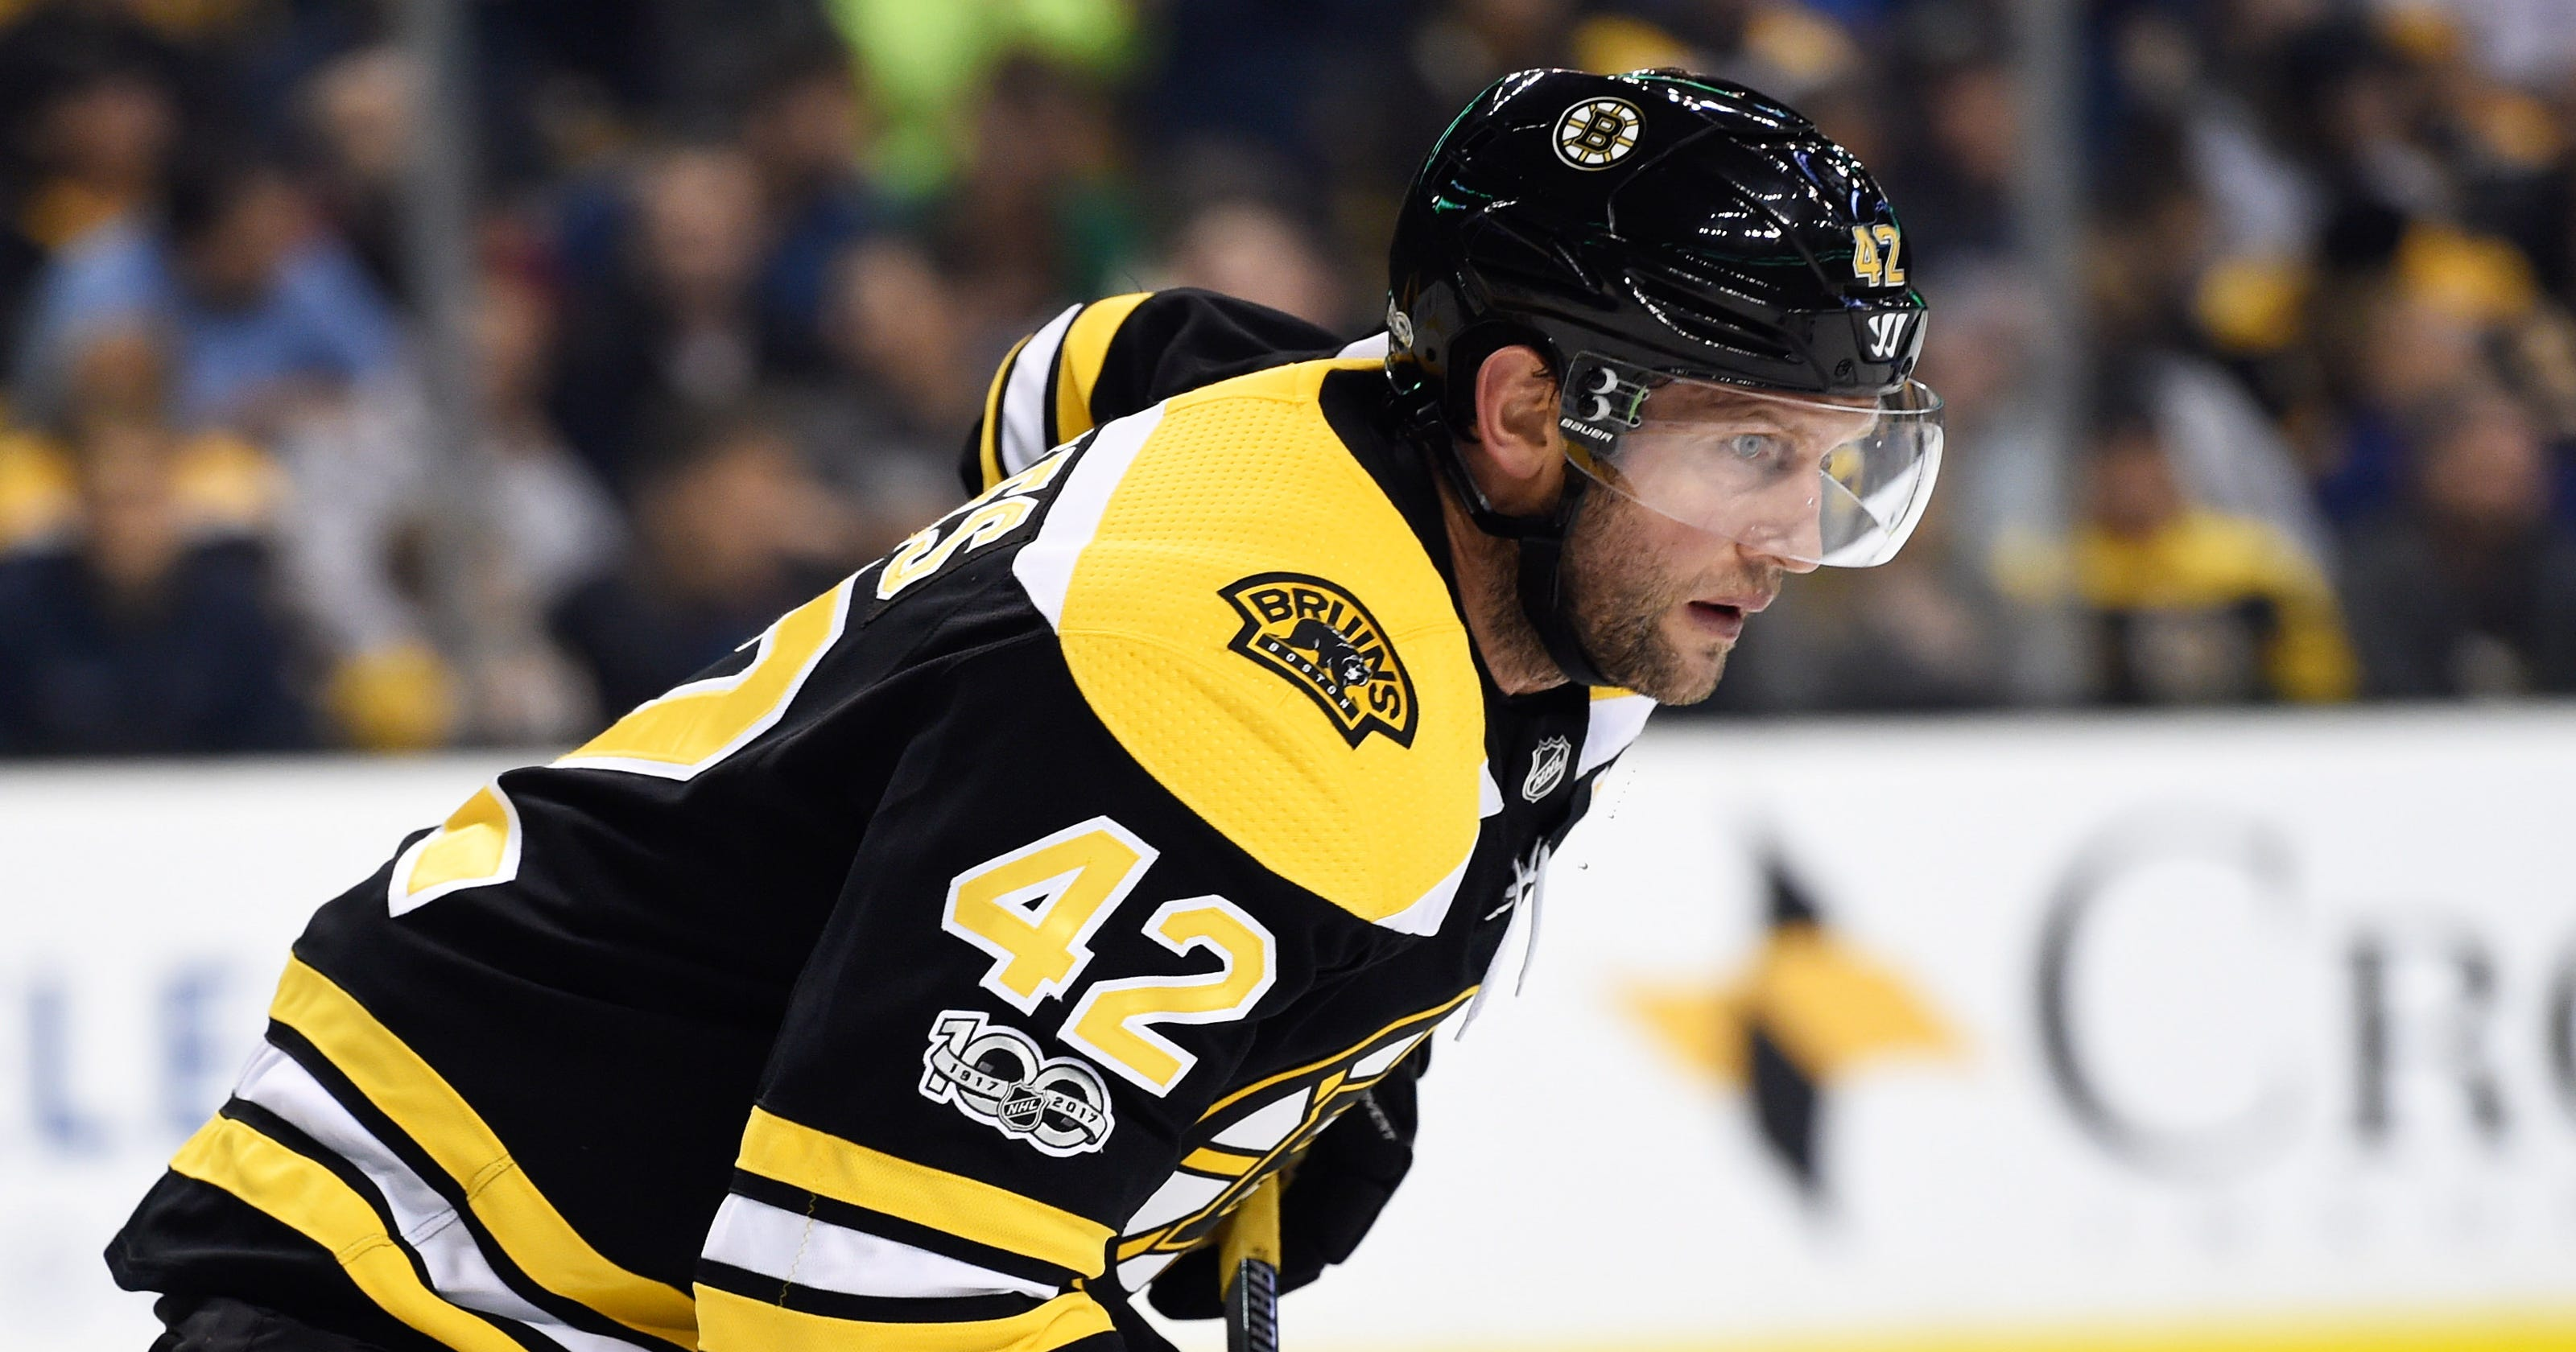 Boston Bruins  David Backes has surgery and is placed on injured reserve e3345bffe